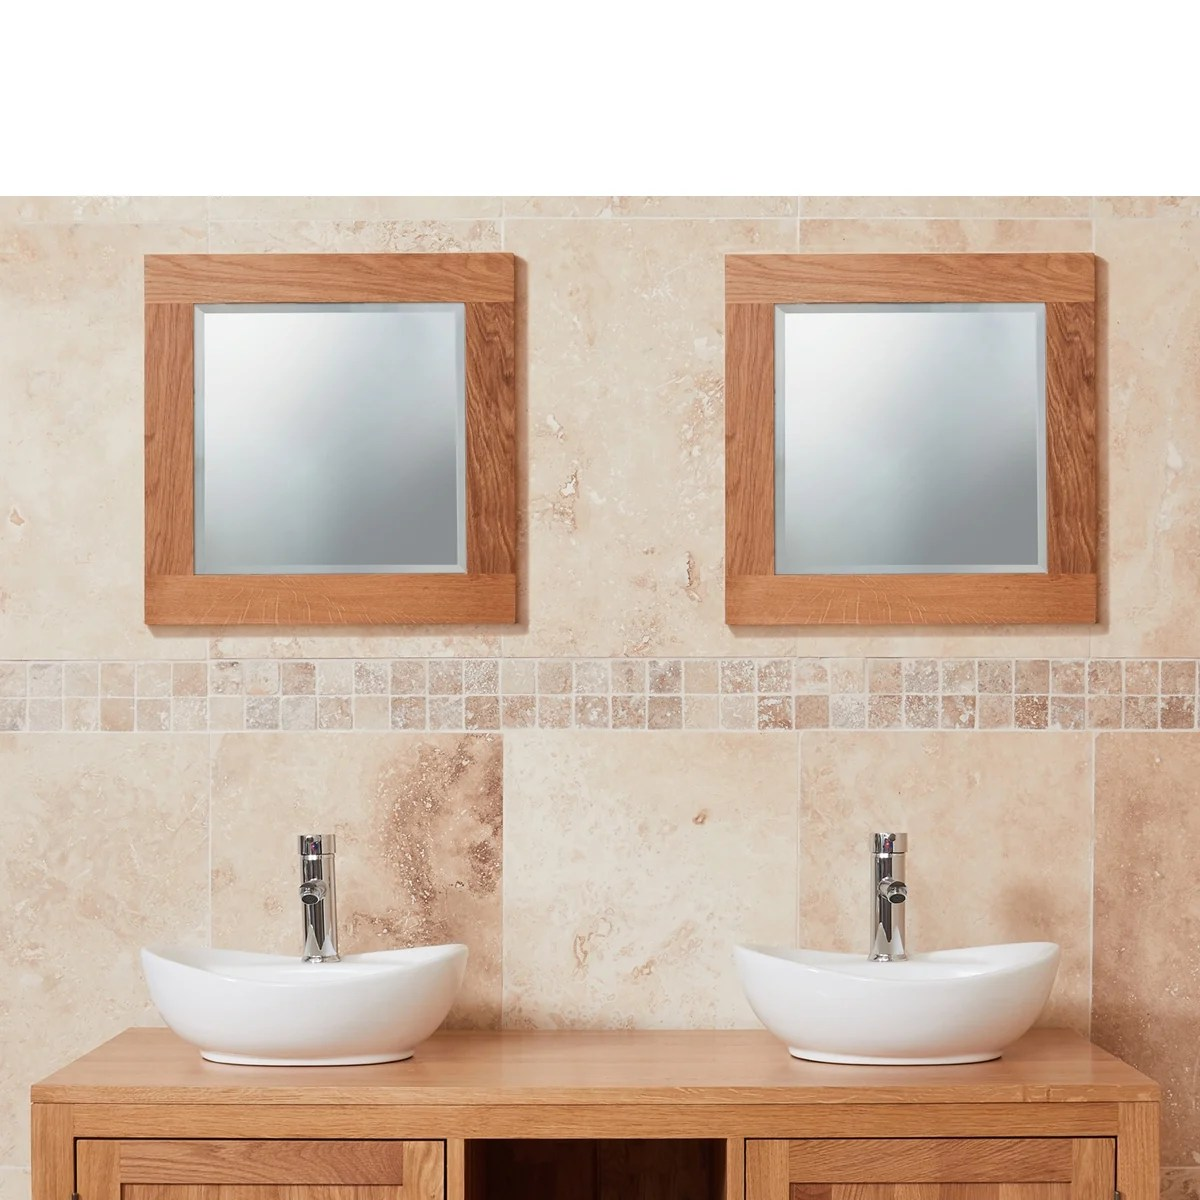 Small Bathroom Mirrors Uk Mobel Oak Small Bathroom Mirror Was £119.00 Now £89.00